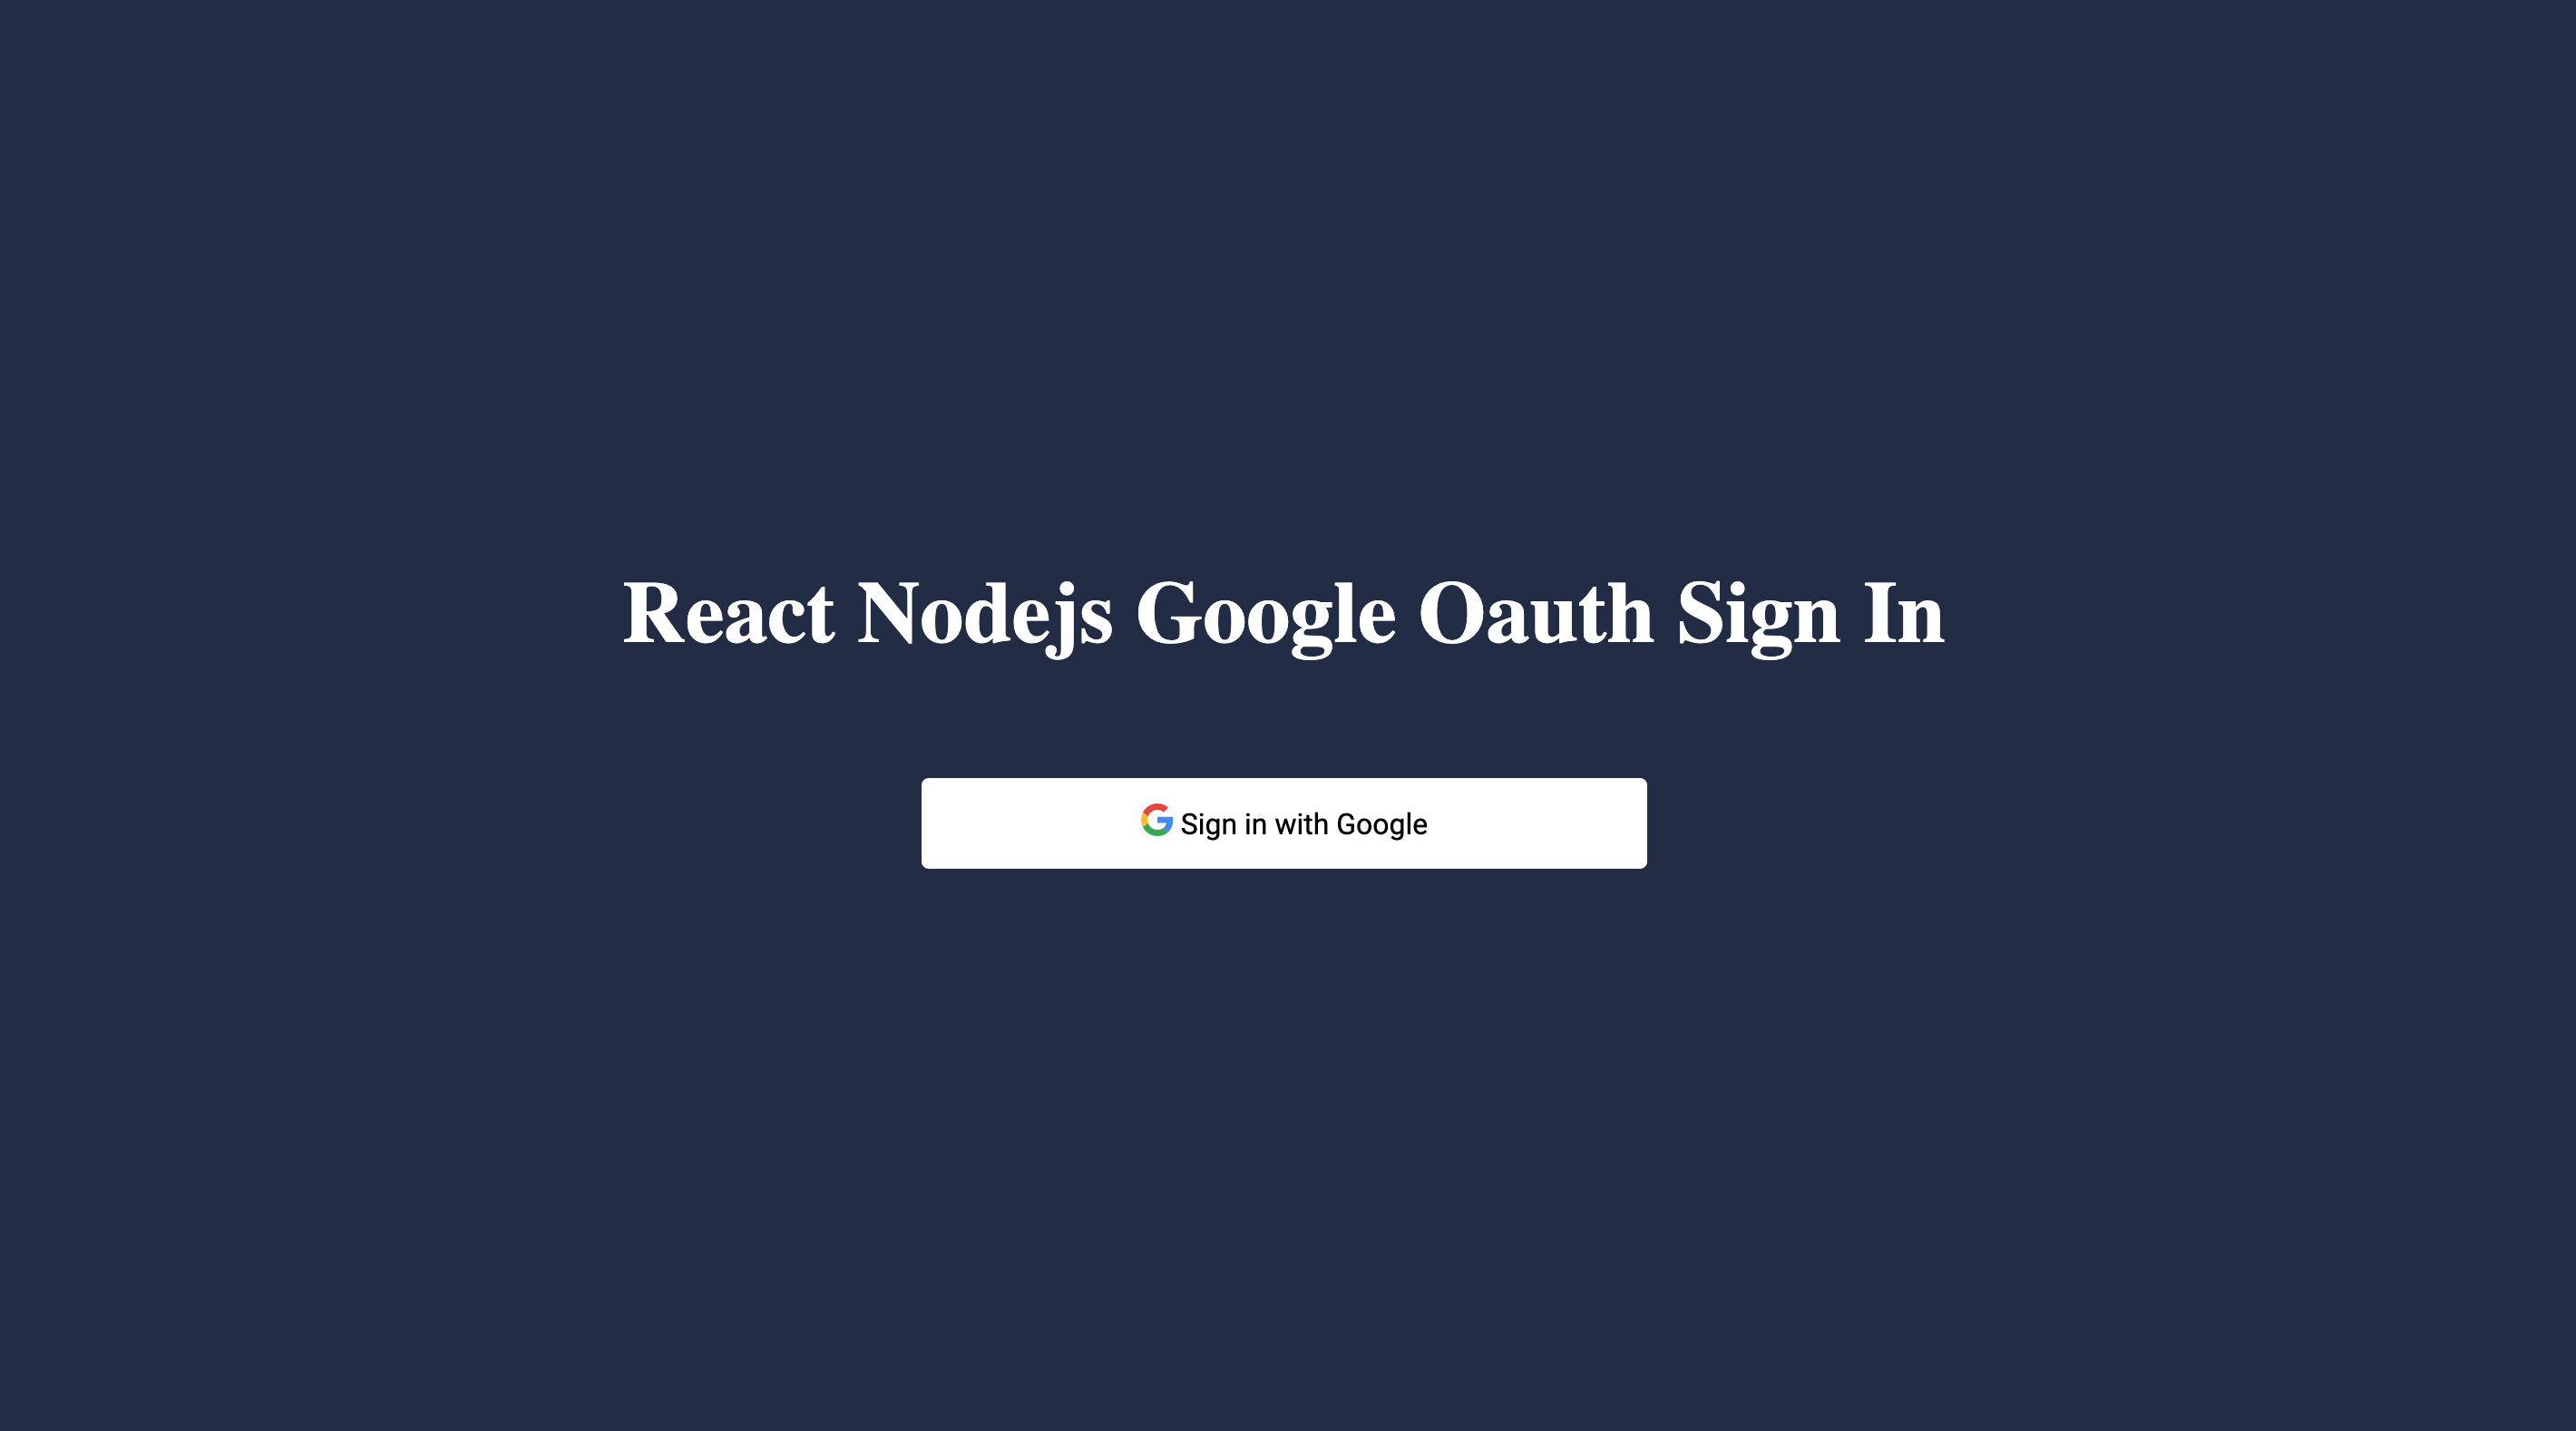 How to implement Google oauth in React and Node/express